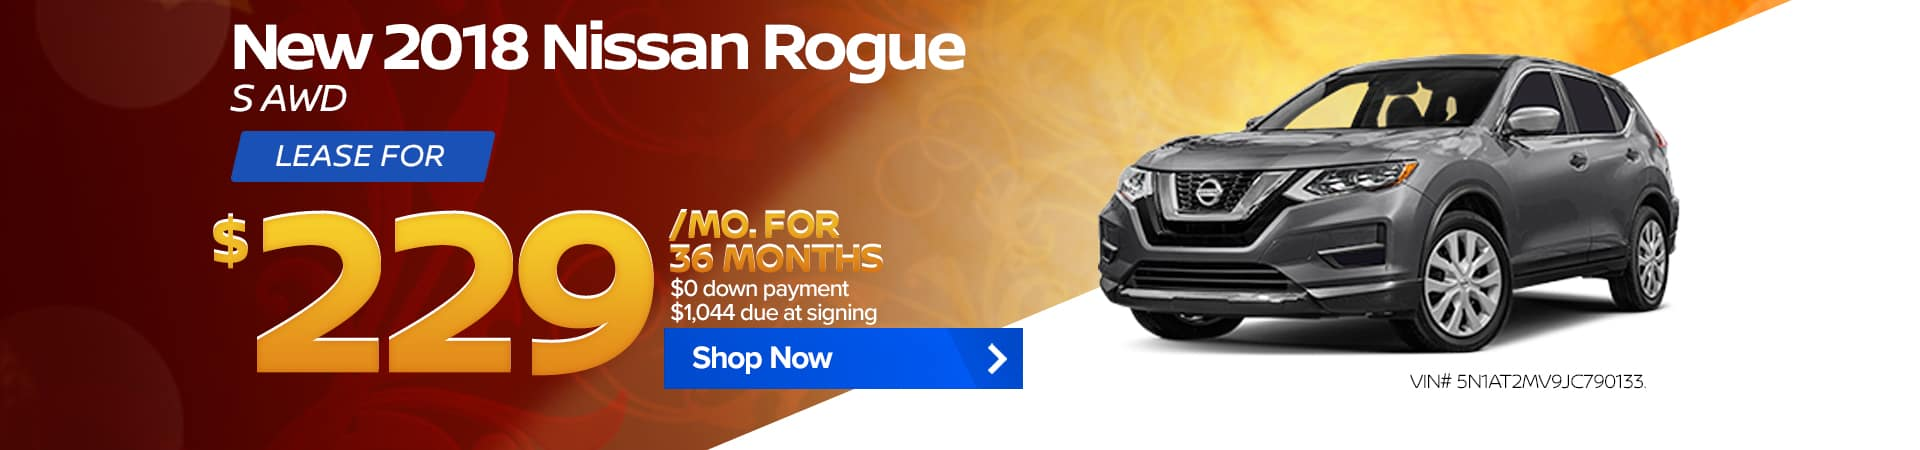 September special for the 2018 Nissan Rogue